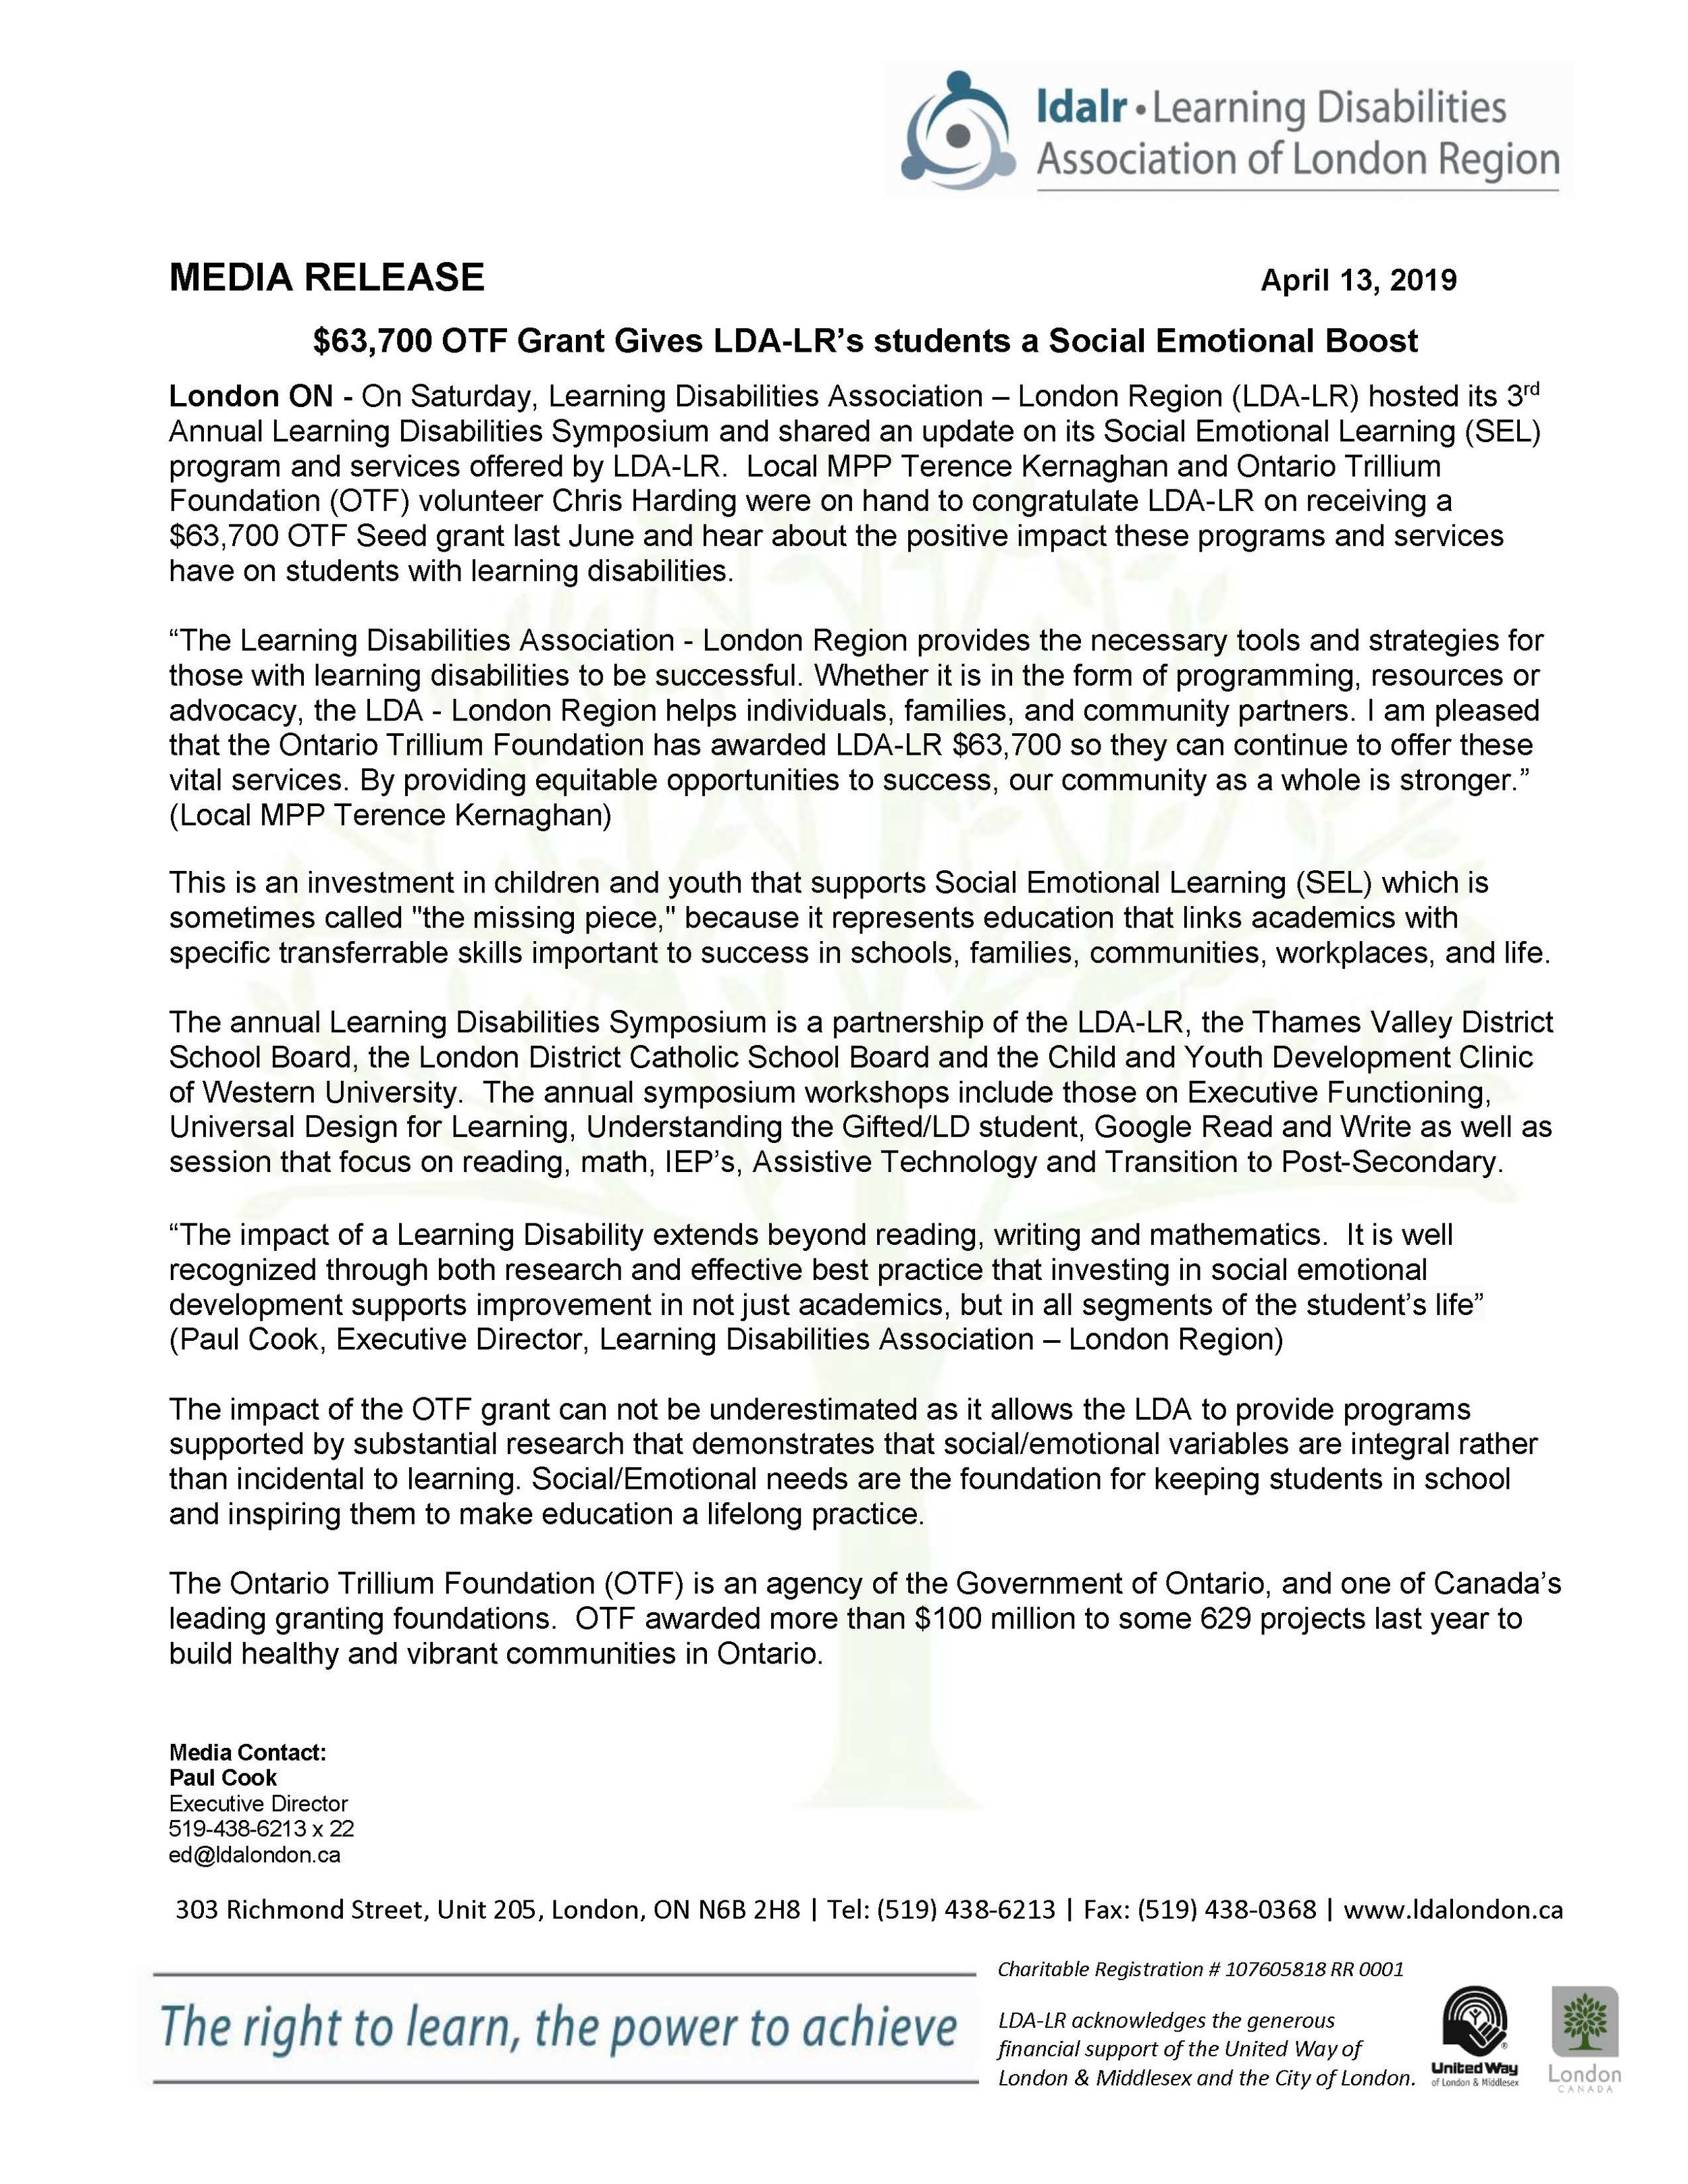 LDA of London Region media release april 13 2019.jpg